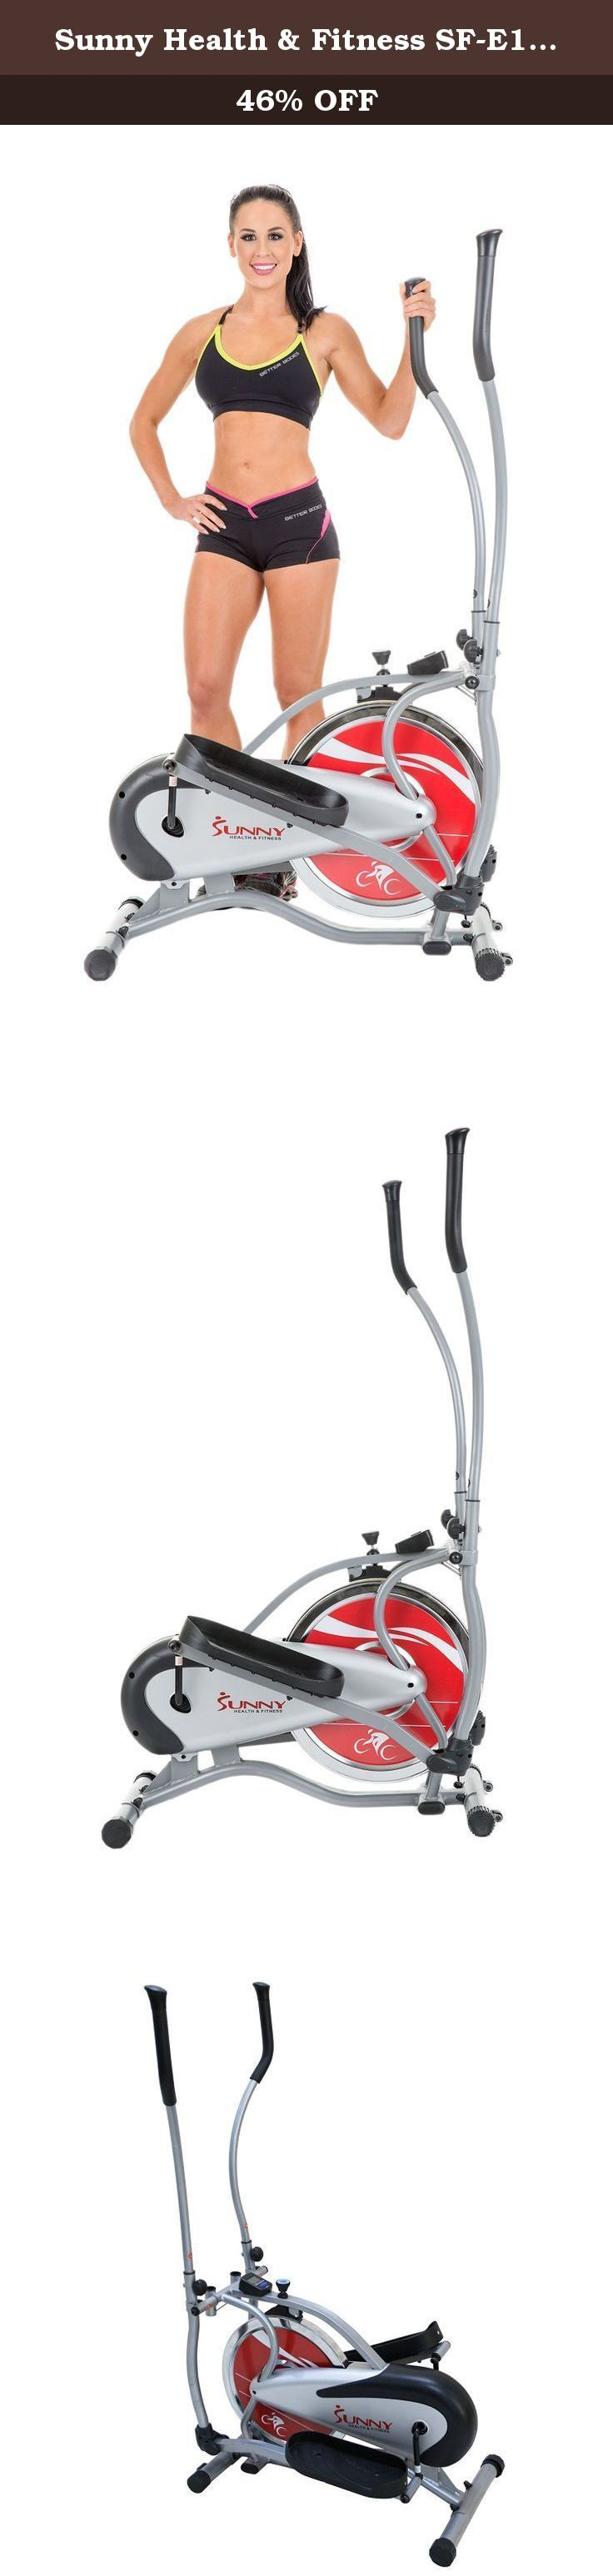 Sunny Health & Fitness SF-E1405 Flywheel Elliptical Trainer, Gray. The Sunny Health & Fitness Flywheel Elliptical Trainer delivers a great cardiovascular and lower/upper body workout; targeting arms, buttocks, quadriceps, hamstrings, and calves. Equipped with 16LBS chrome flywheel ensures a smother elliptical feel created by the continuity of the flywheel spin, resulting in a lesser stress on joints. The dual action handlebars allow swing and fixed handle positions that lets you target a...